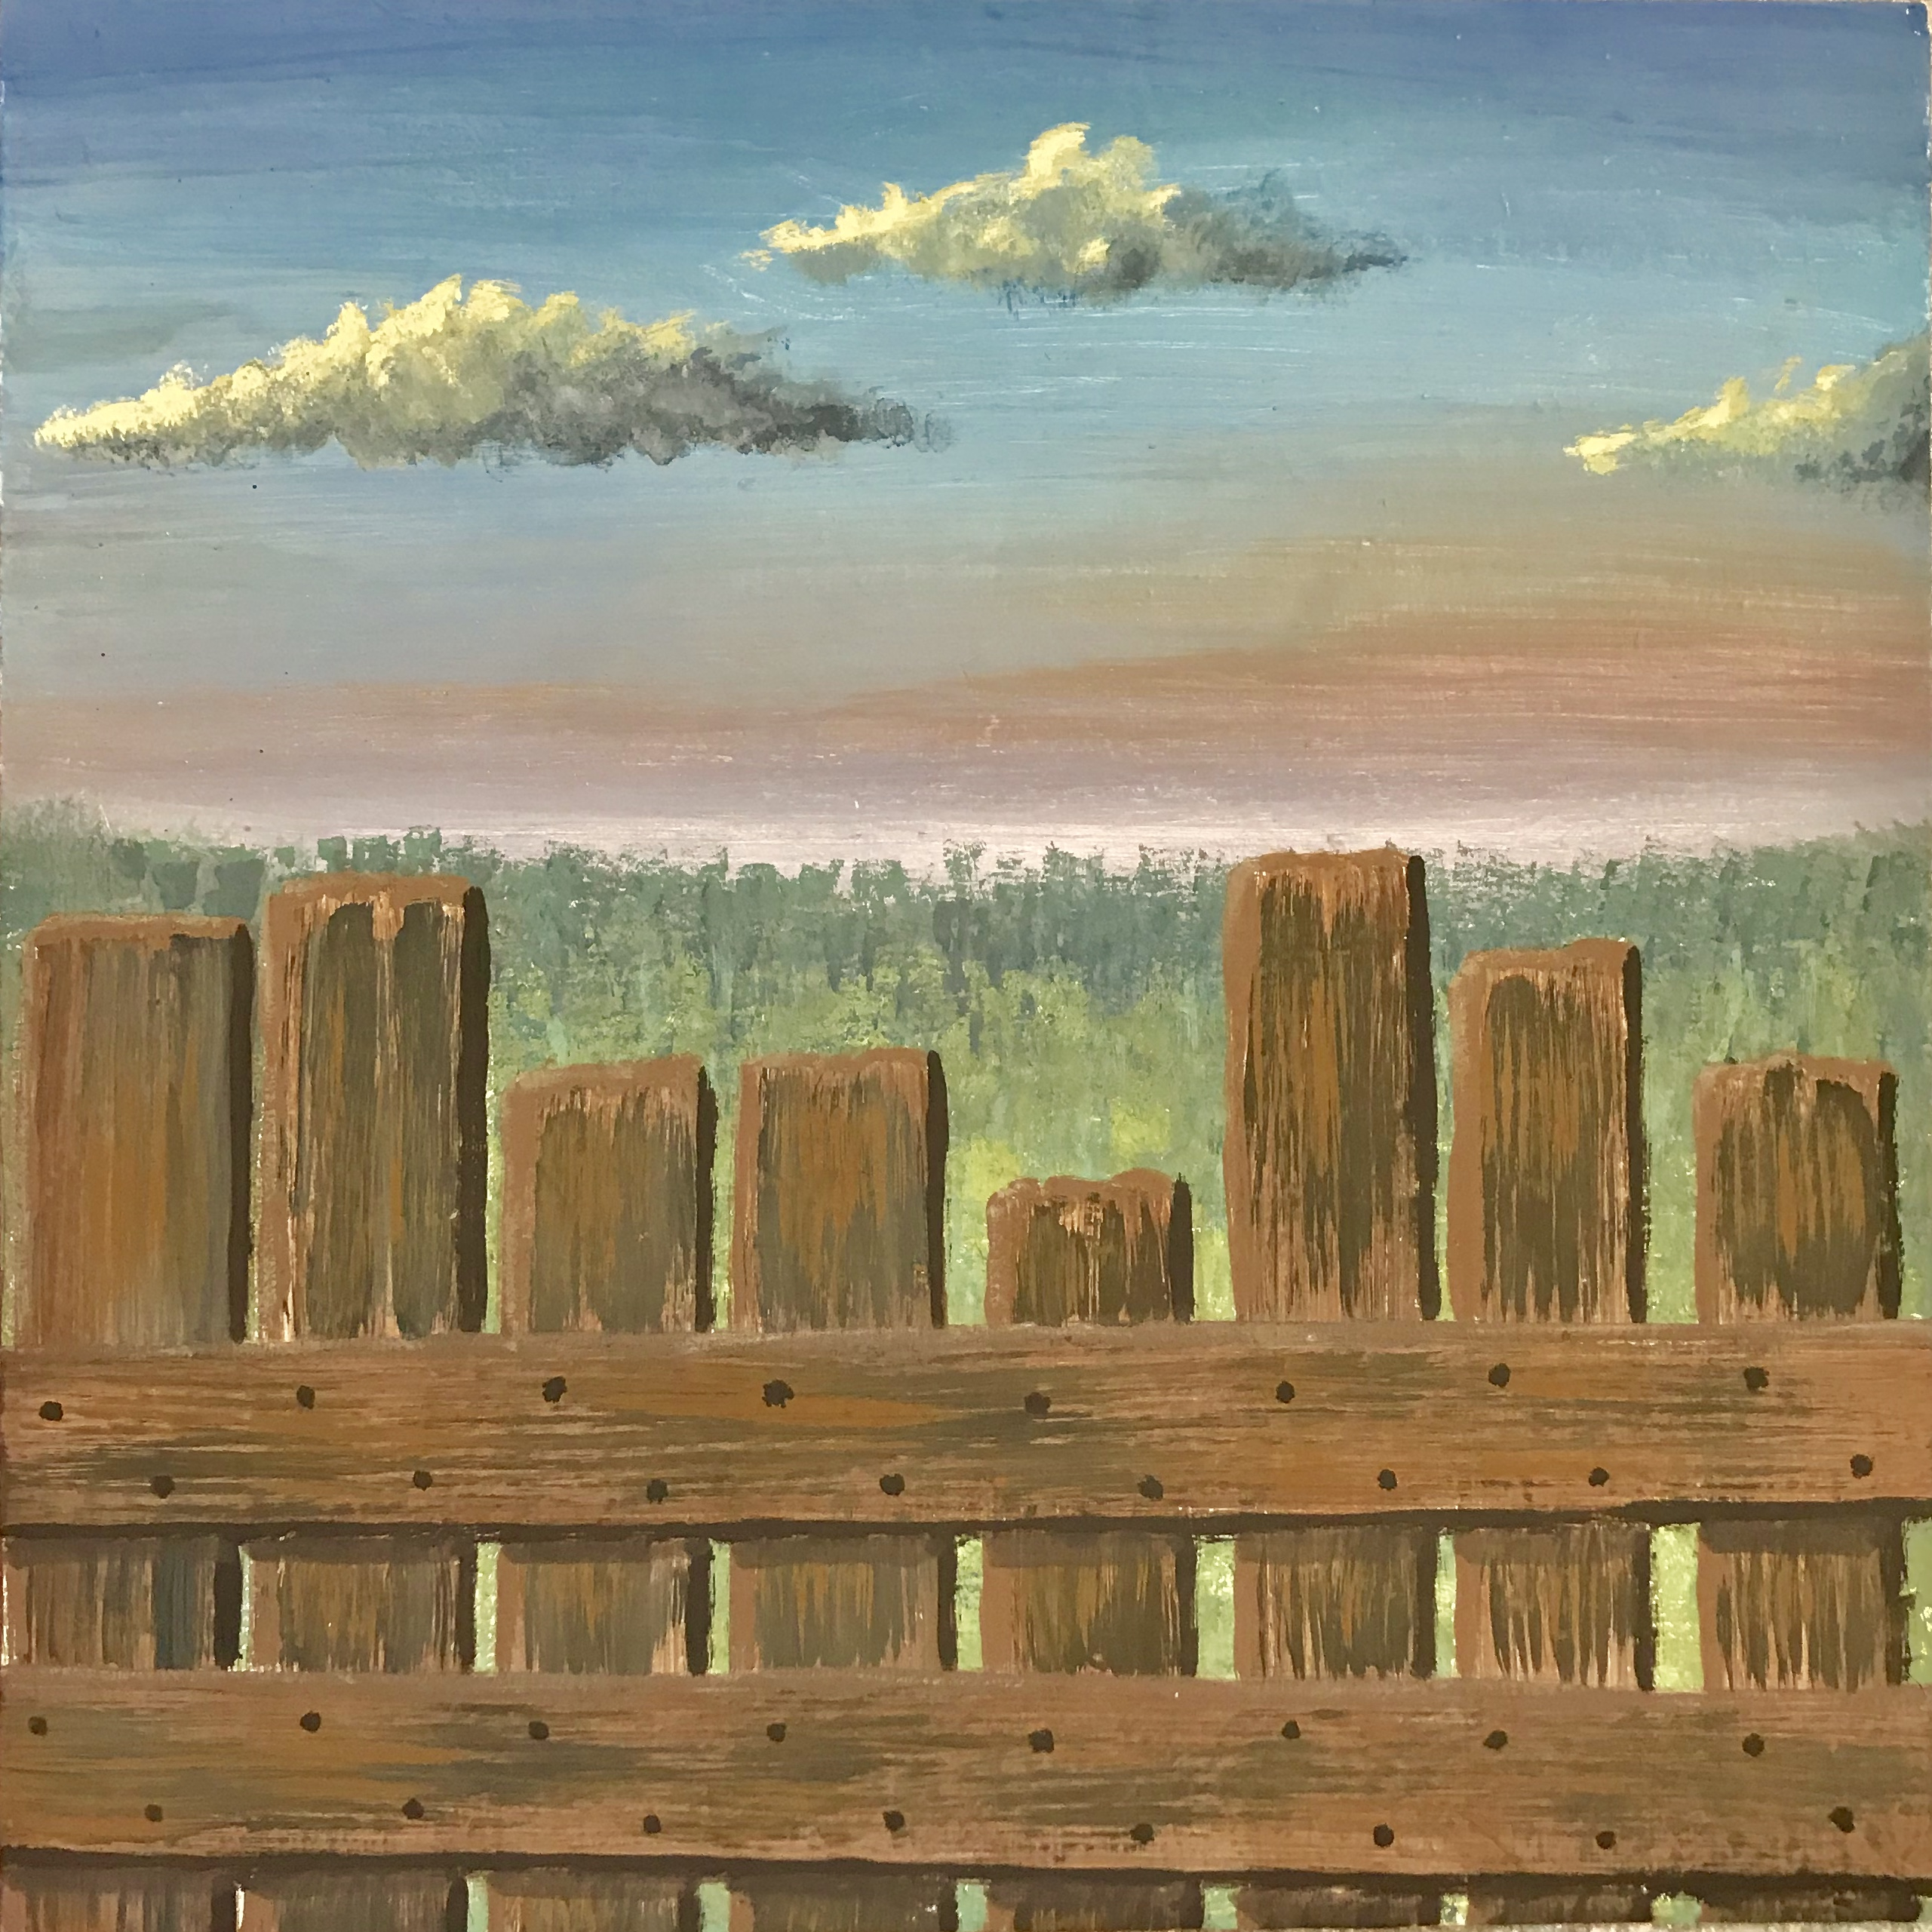 Scenic Painting Wood Fence Project